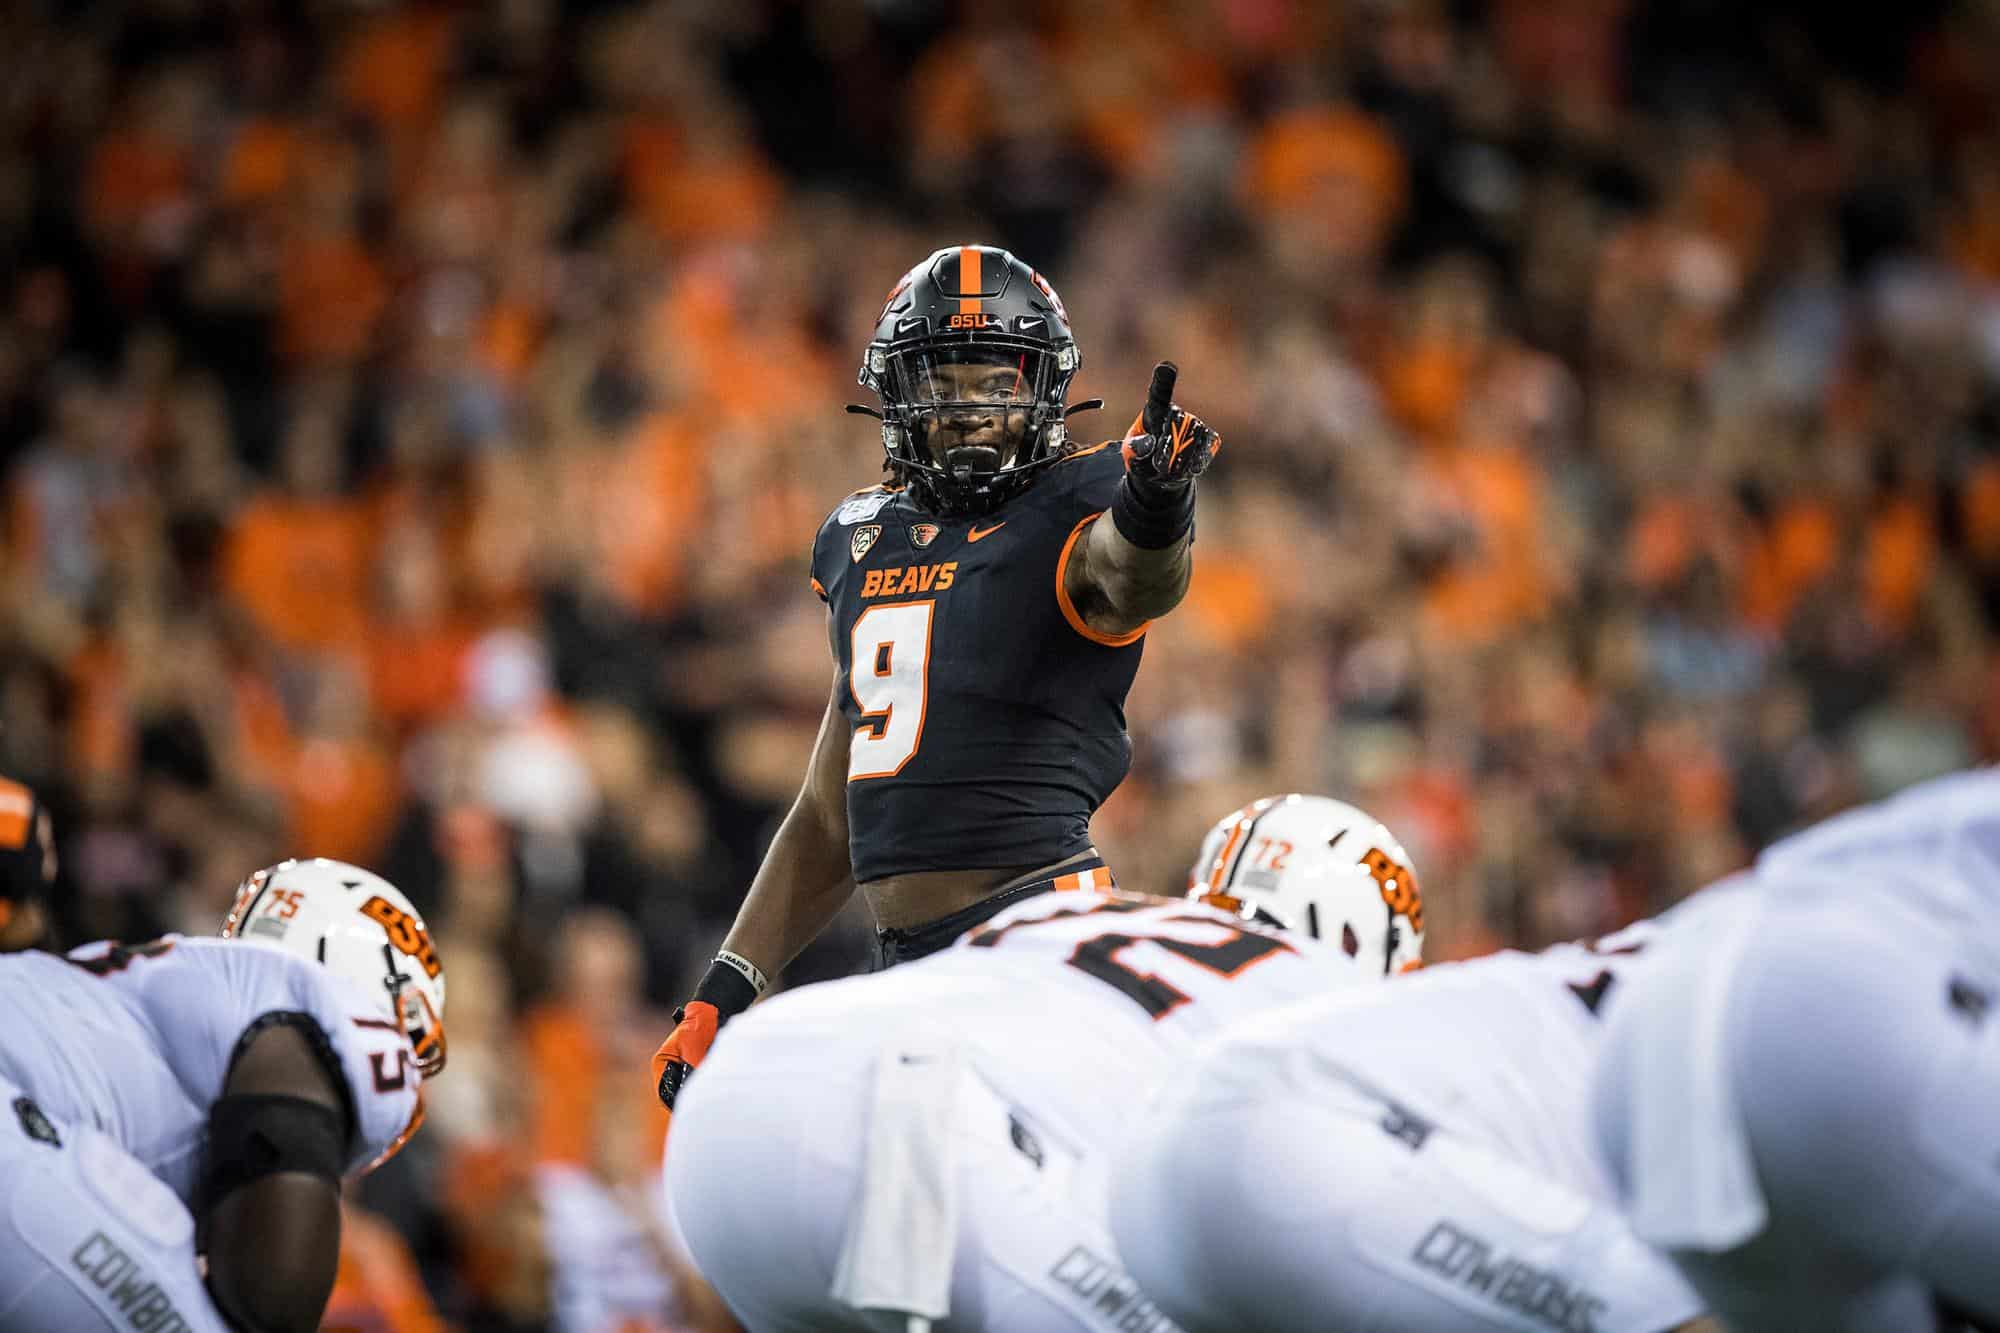 2021 NFL Draft: Oregon State's Rashed Jr. a first-round rusher?